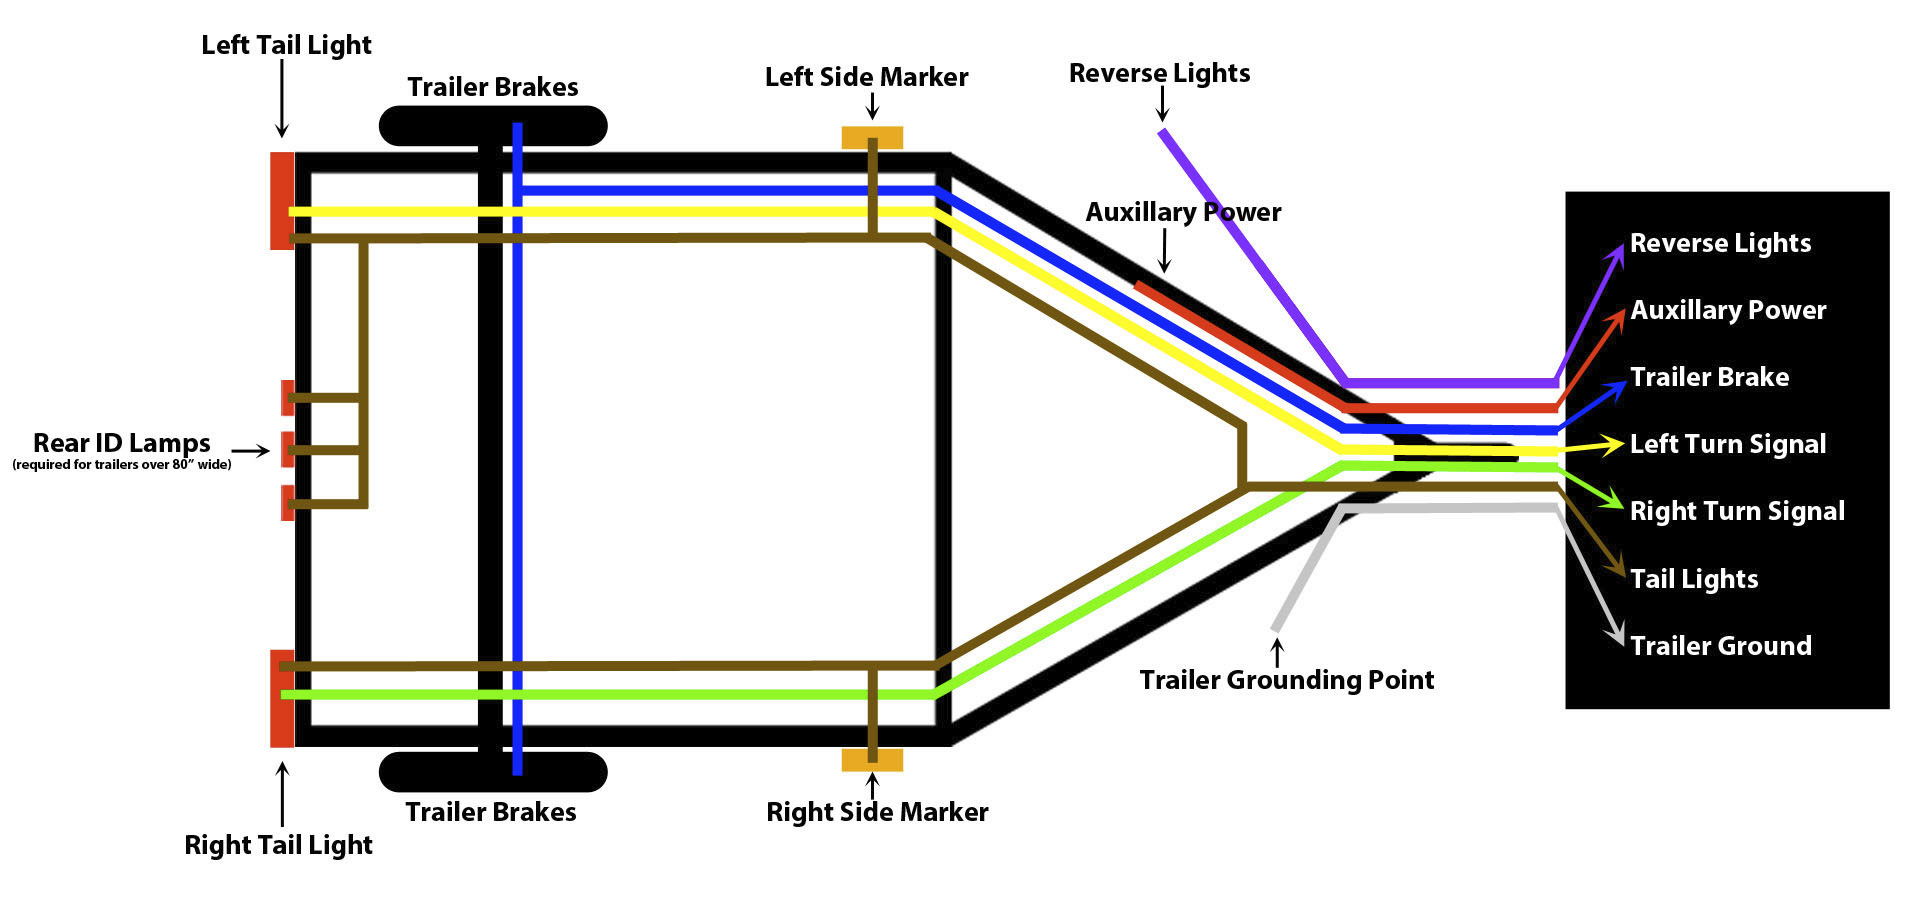 Warner Trailer Plug Wiring Diagram - Wiring Diagram Online - Wiring Diagram For Trailer Lights